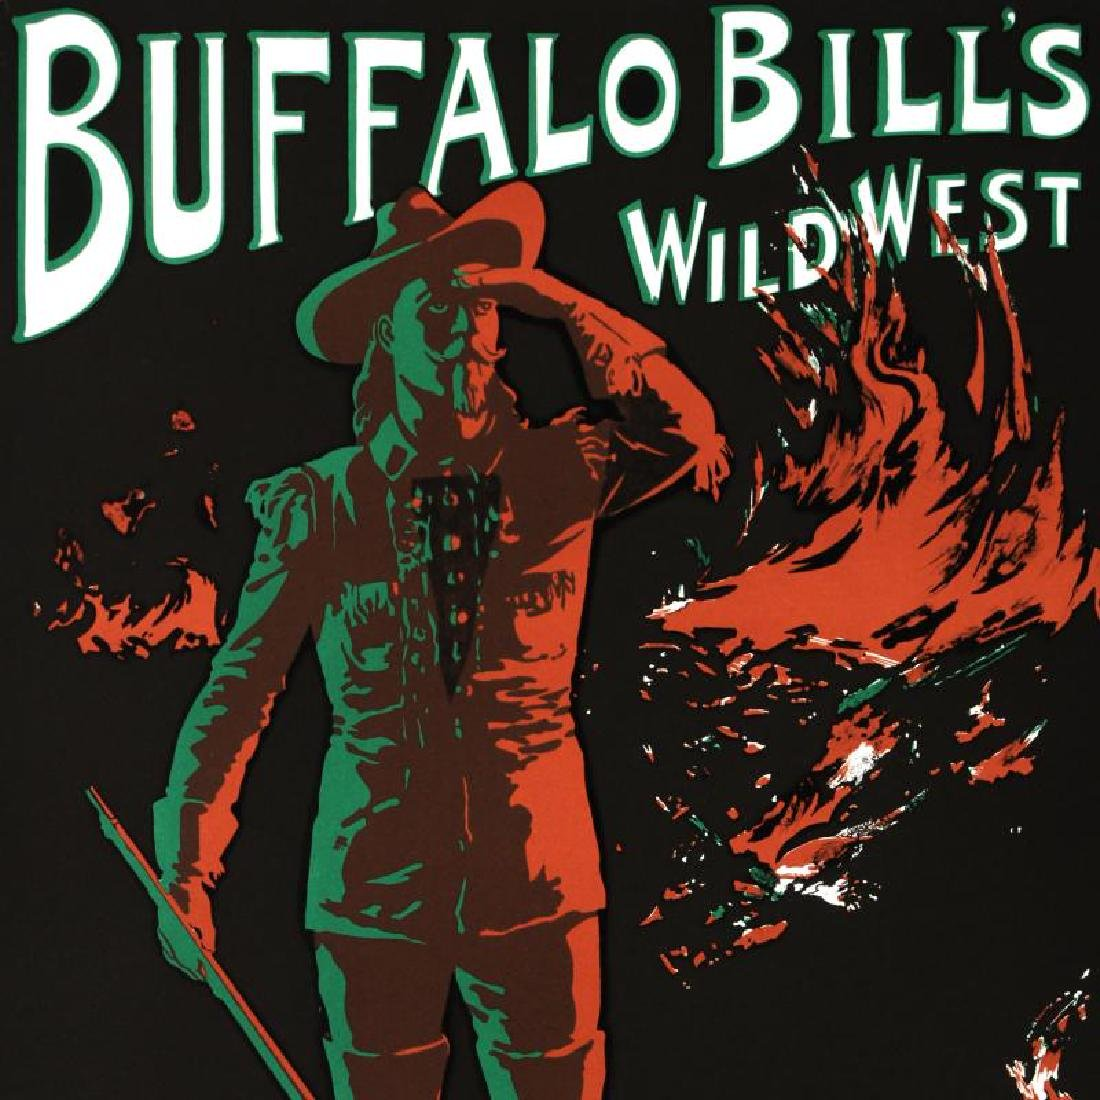 """""""Buffalo Bills Wild West"""" Hand Pulled Lithograph by the - 4"""